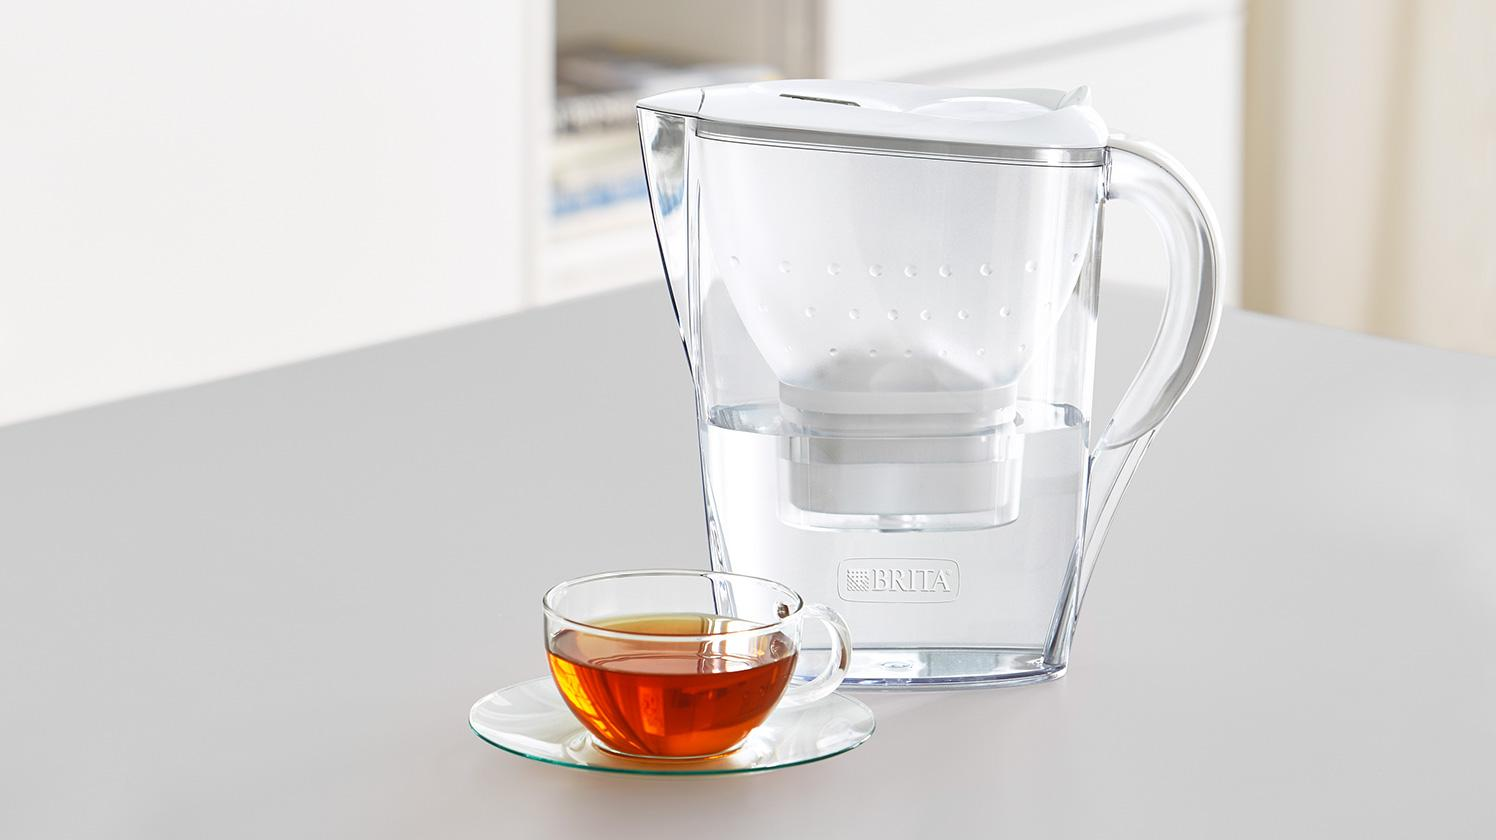 BRITA Marella red tea